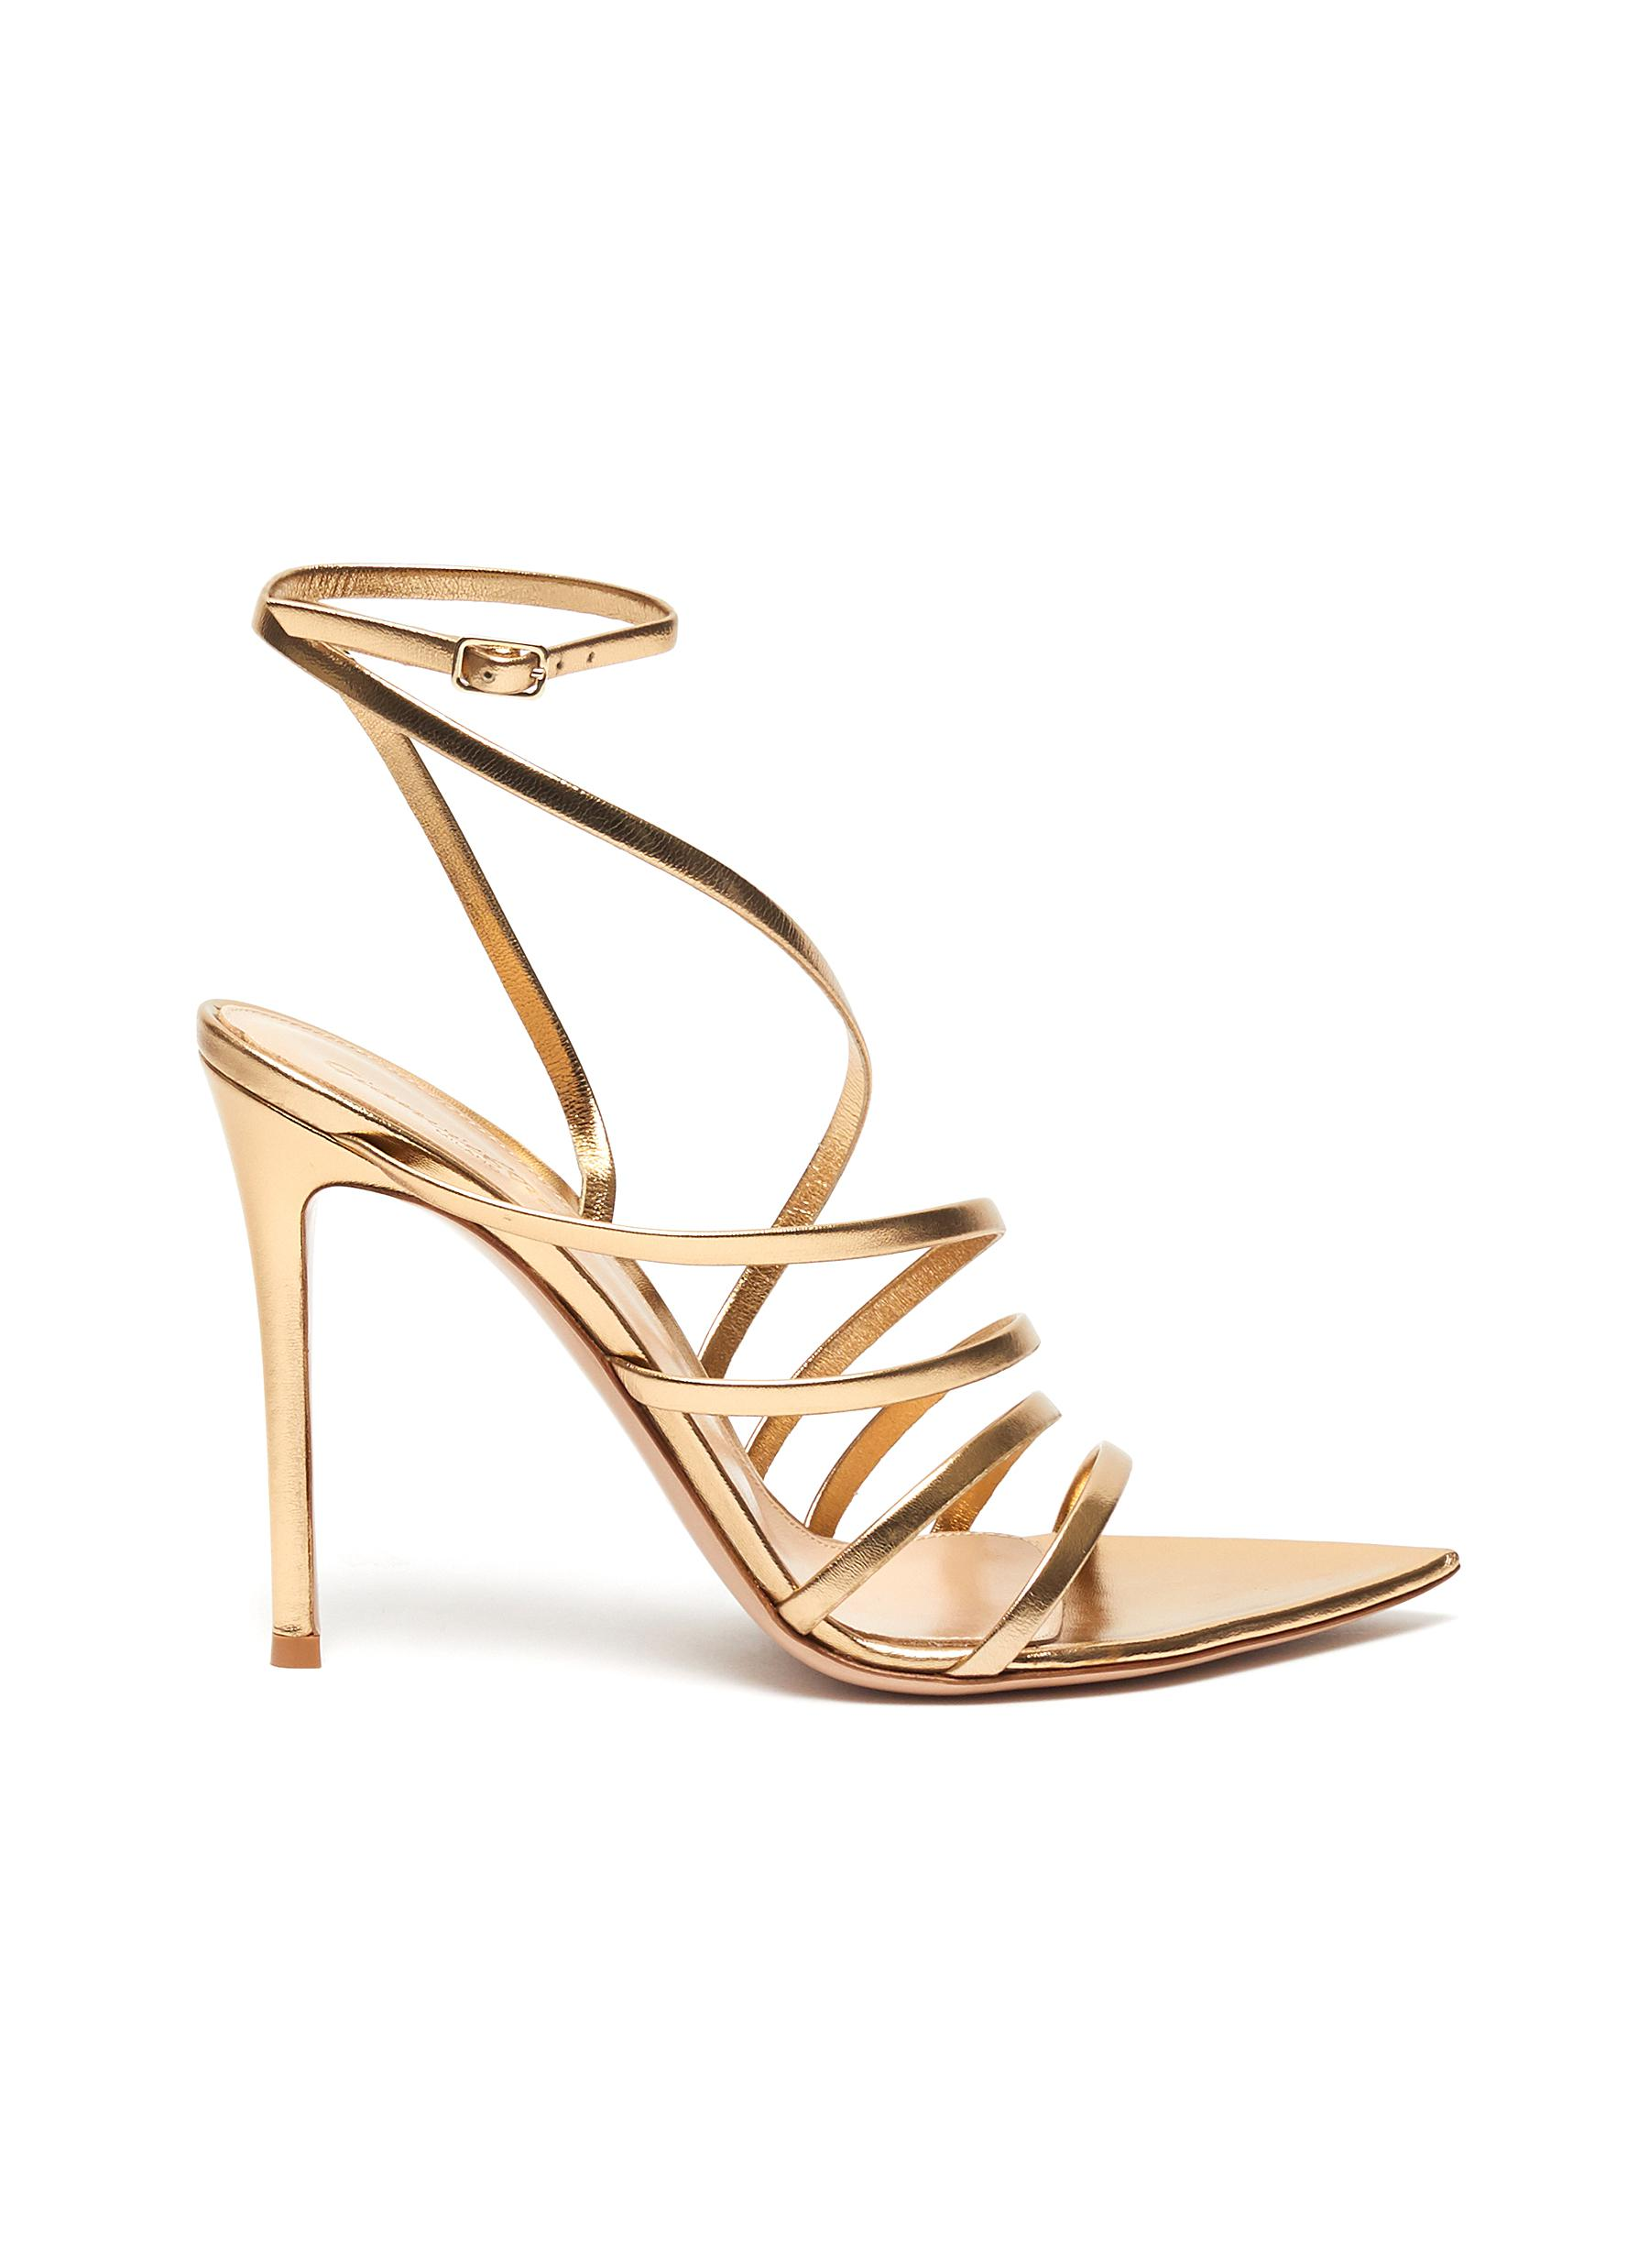 Gianvito Rossi High Heels Multistrap leather sandals